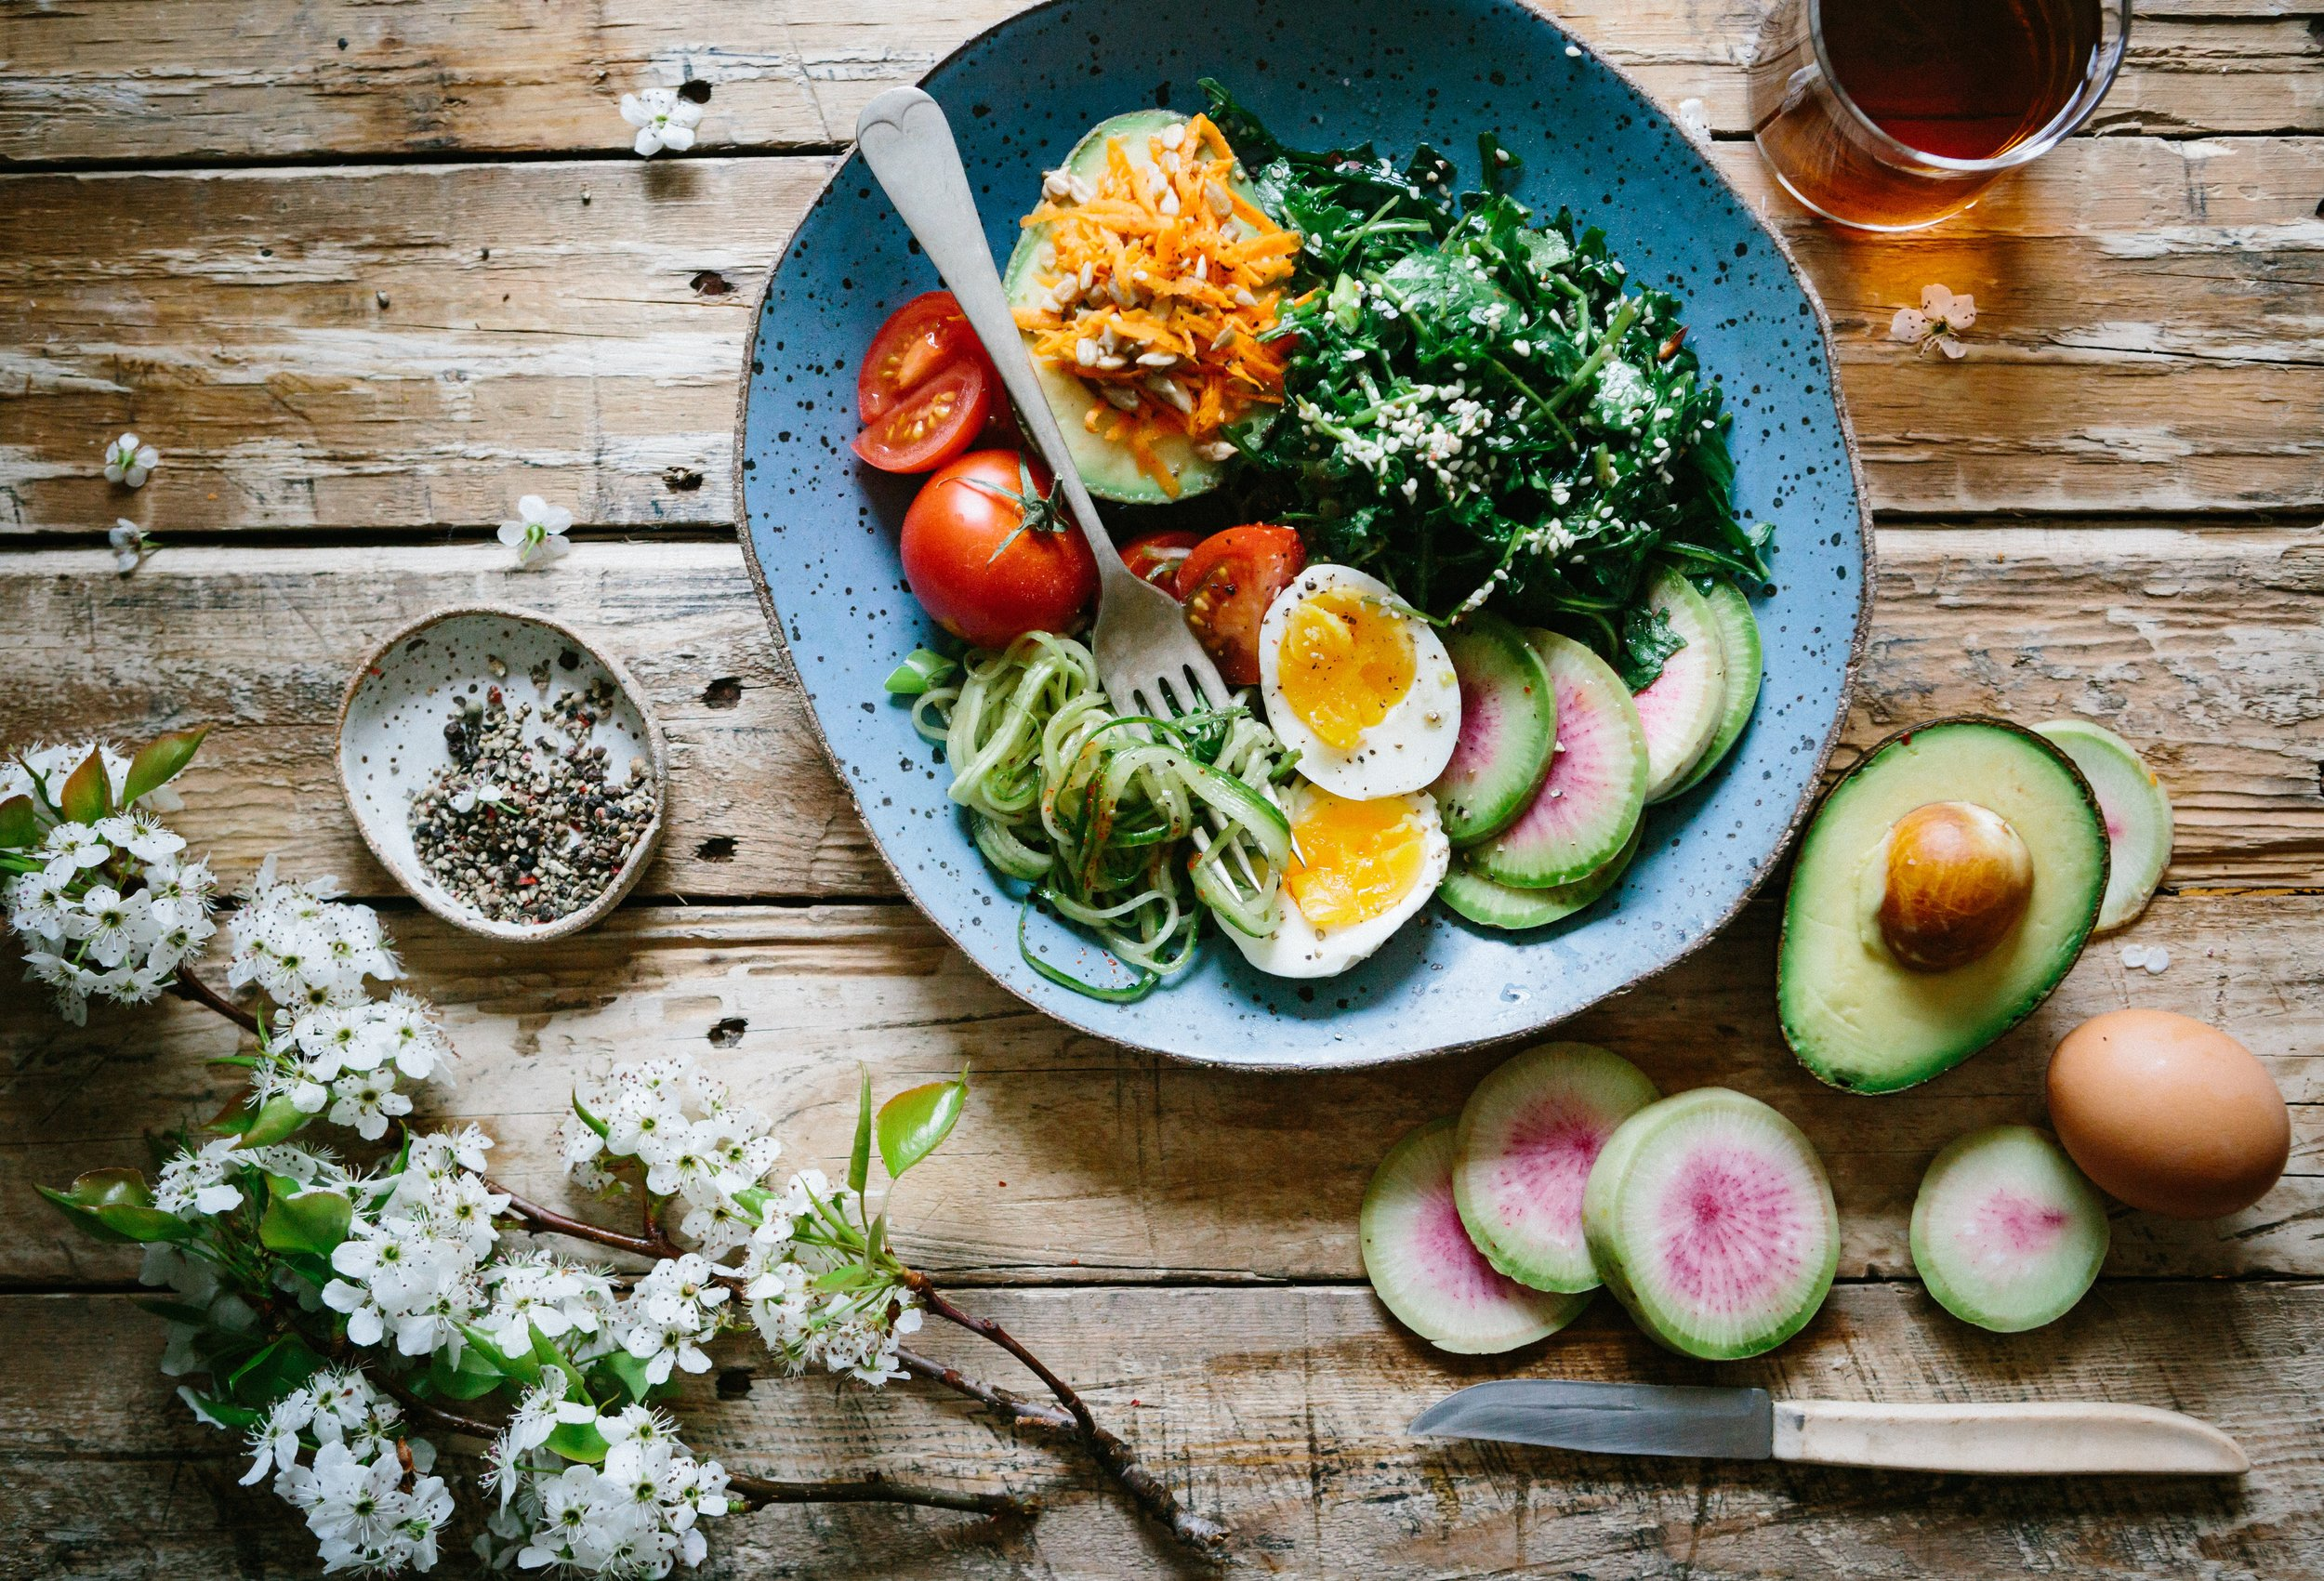 Nutritionist Healthy Meal